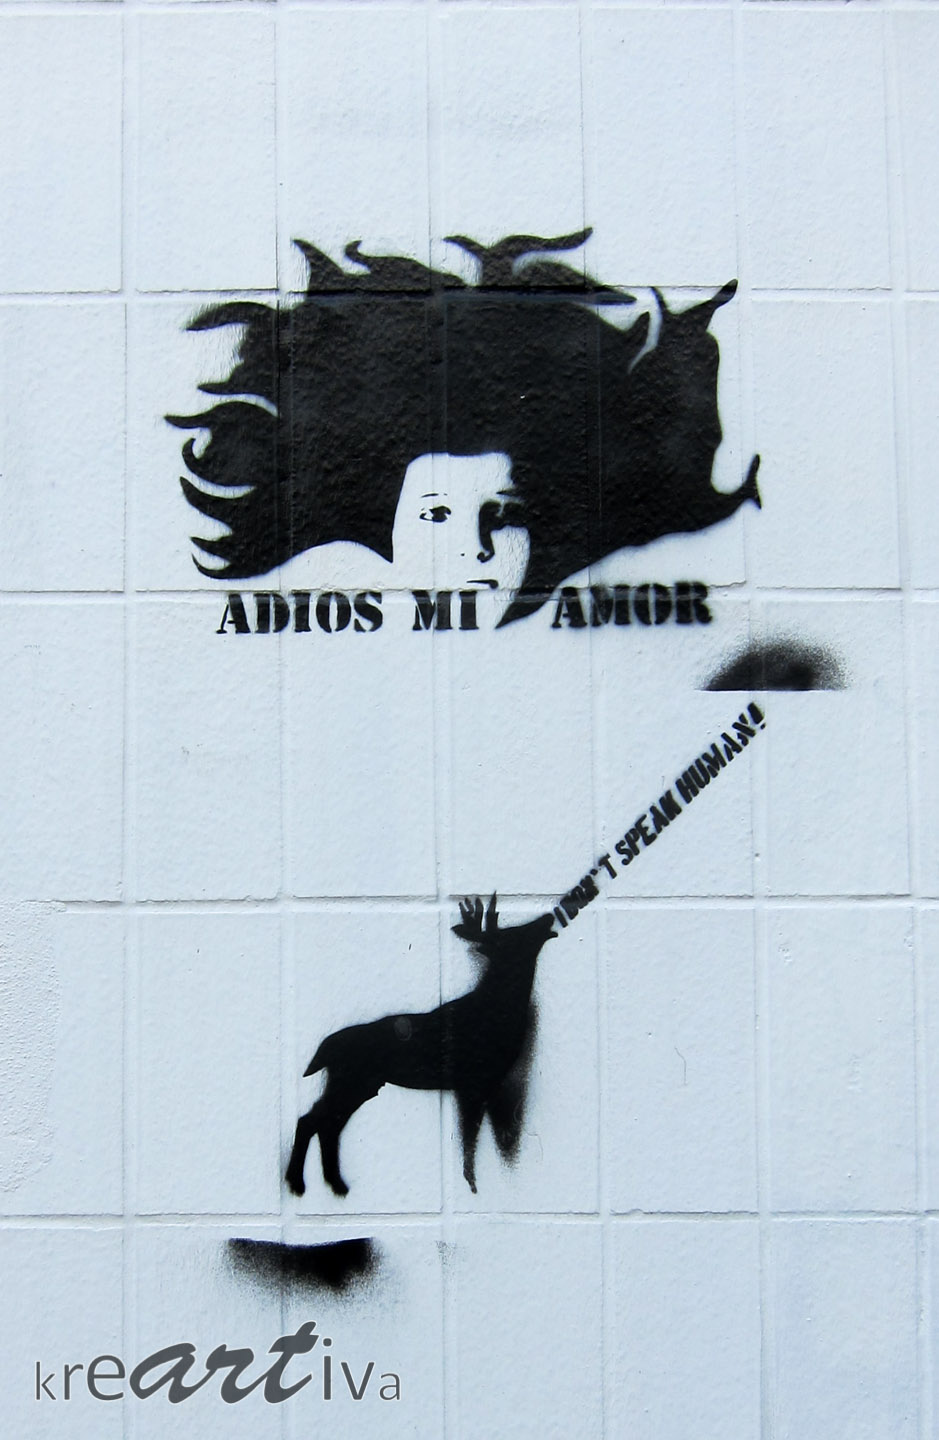 I don't speak human, mi amor. Leipzig Deutschland 2015